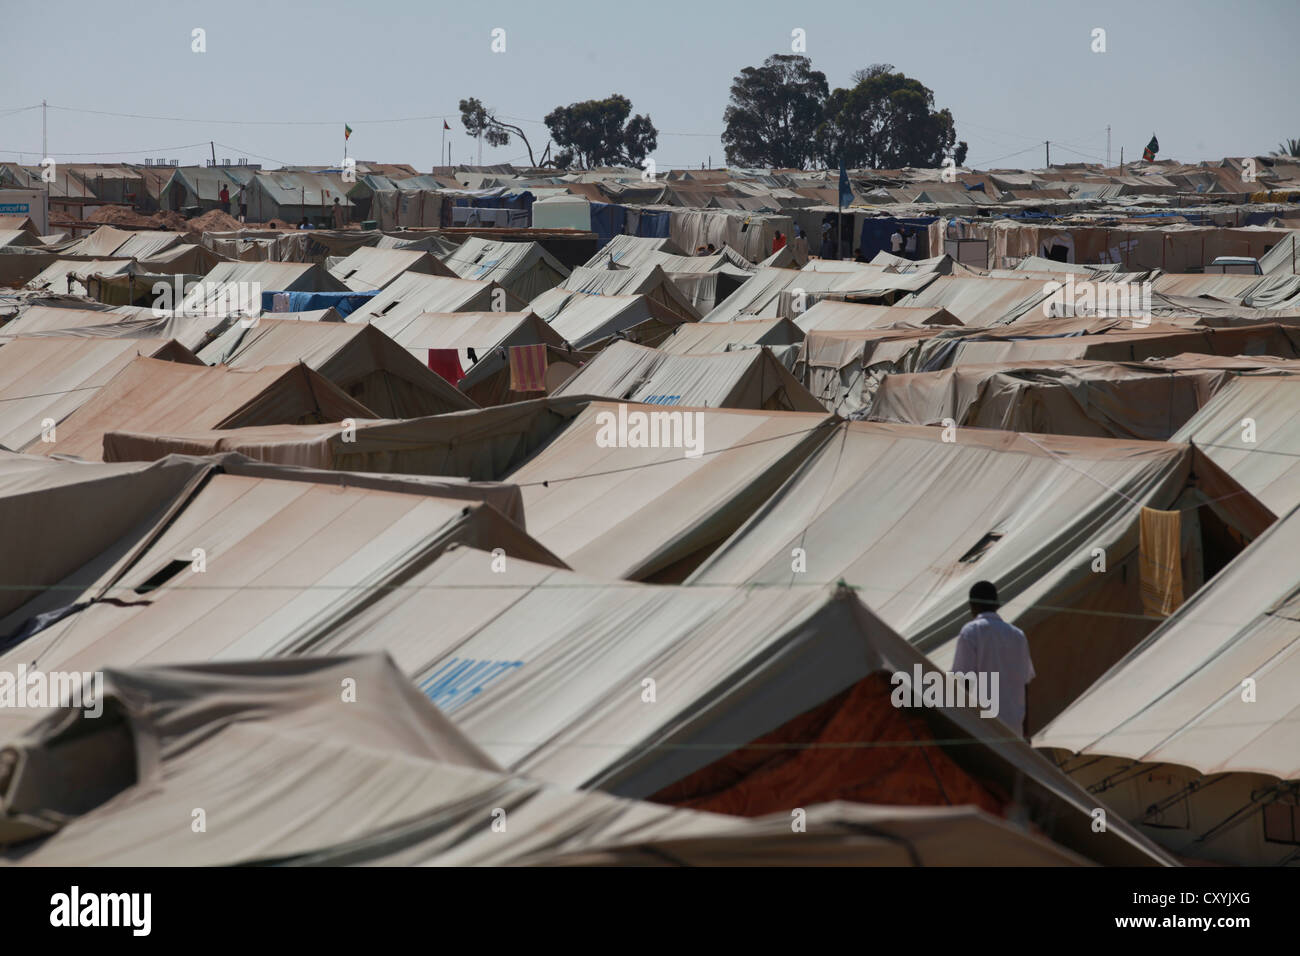 Choucha refugee camp, UN tent city, several thousands of war refugees from Libya and other war zones live under - Stock Image